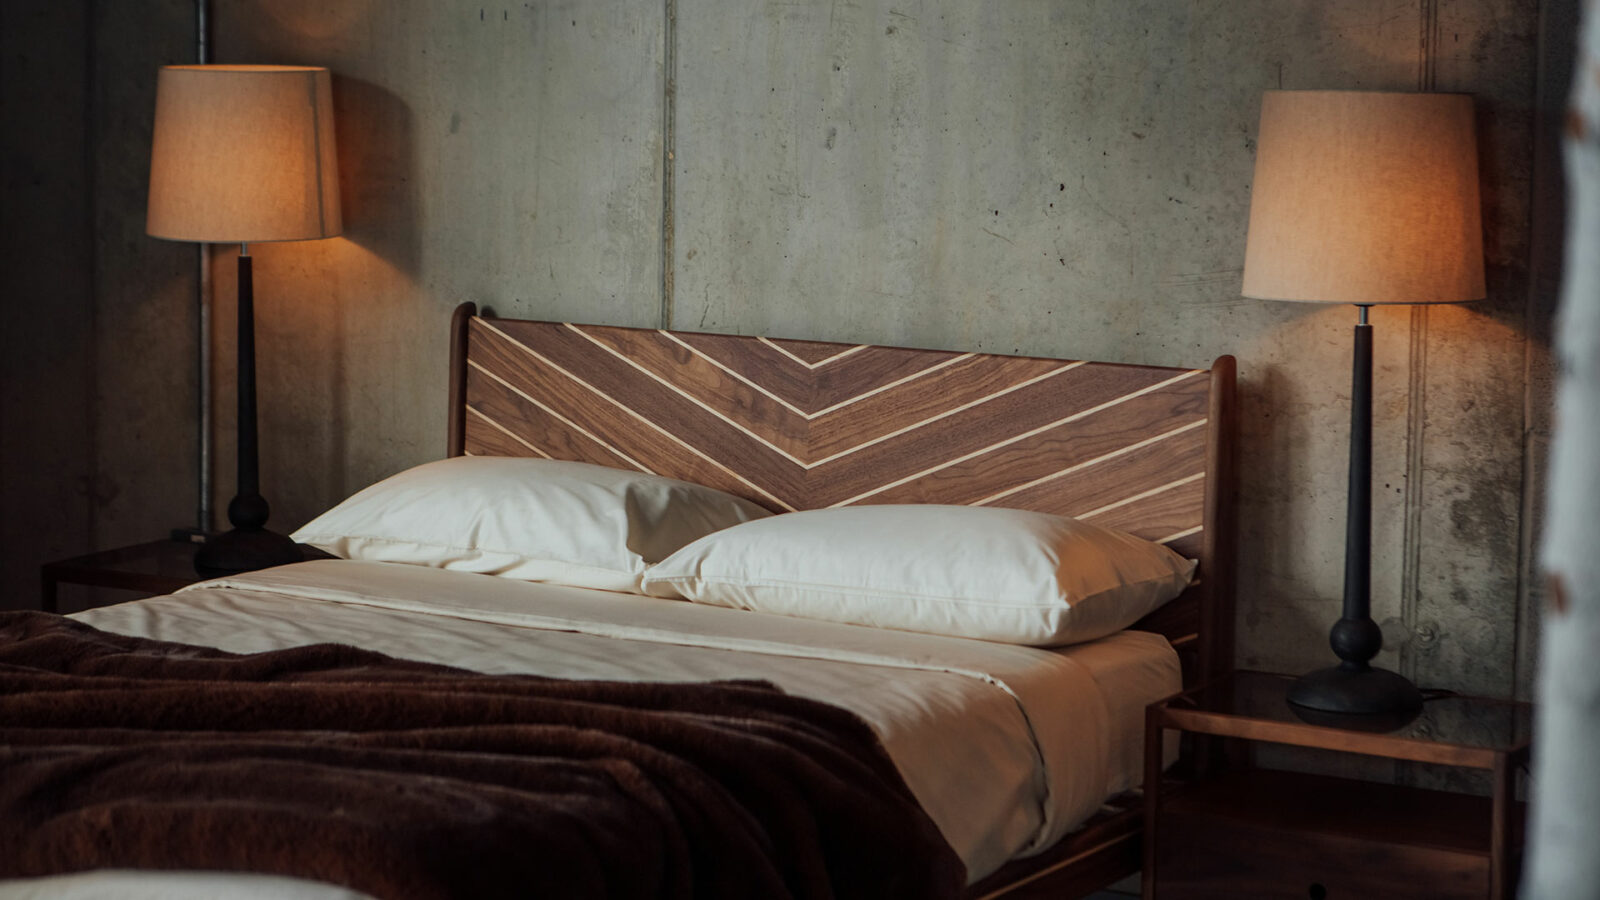 Hand-made in Britain our Special edition Hoxton bed with chevron patten headboard in walnut and maple.